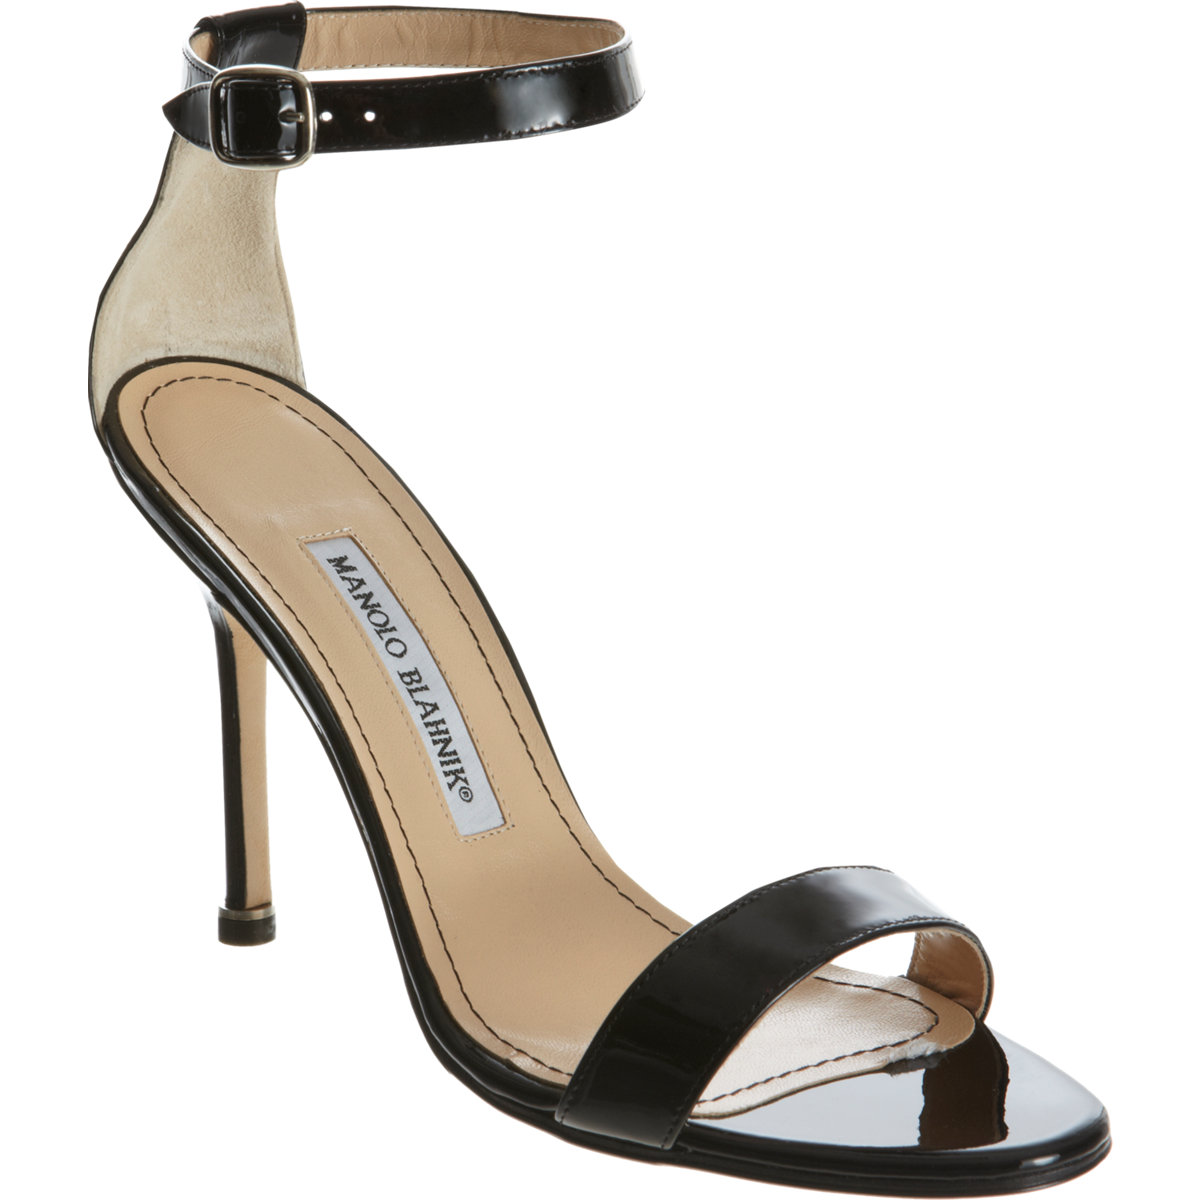 Manolo Blahnik Chaos at Barneys.com